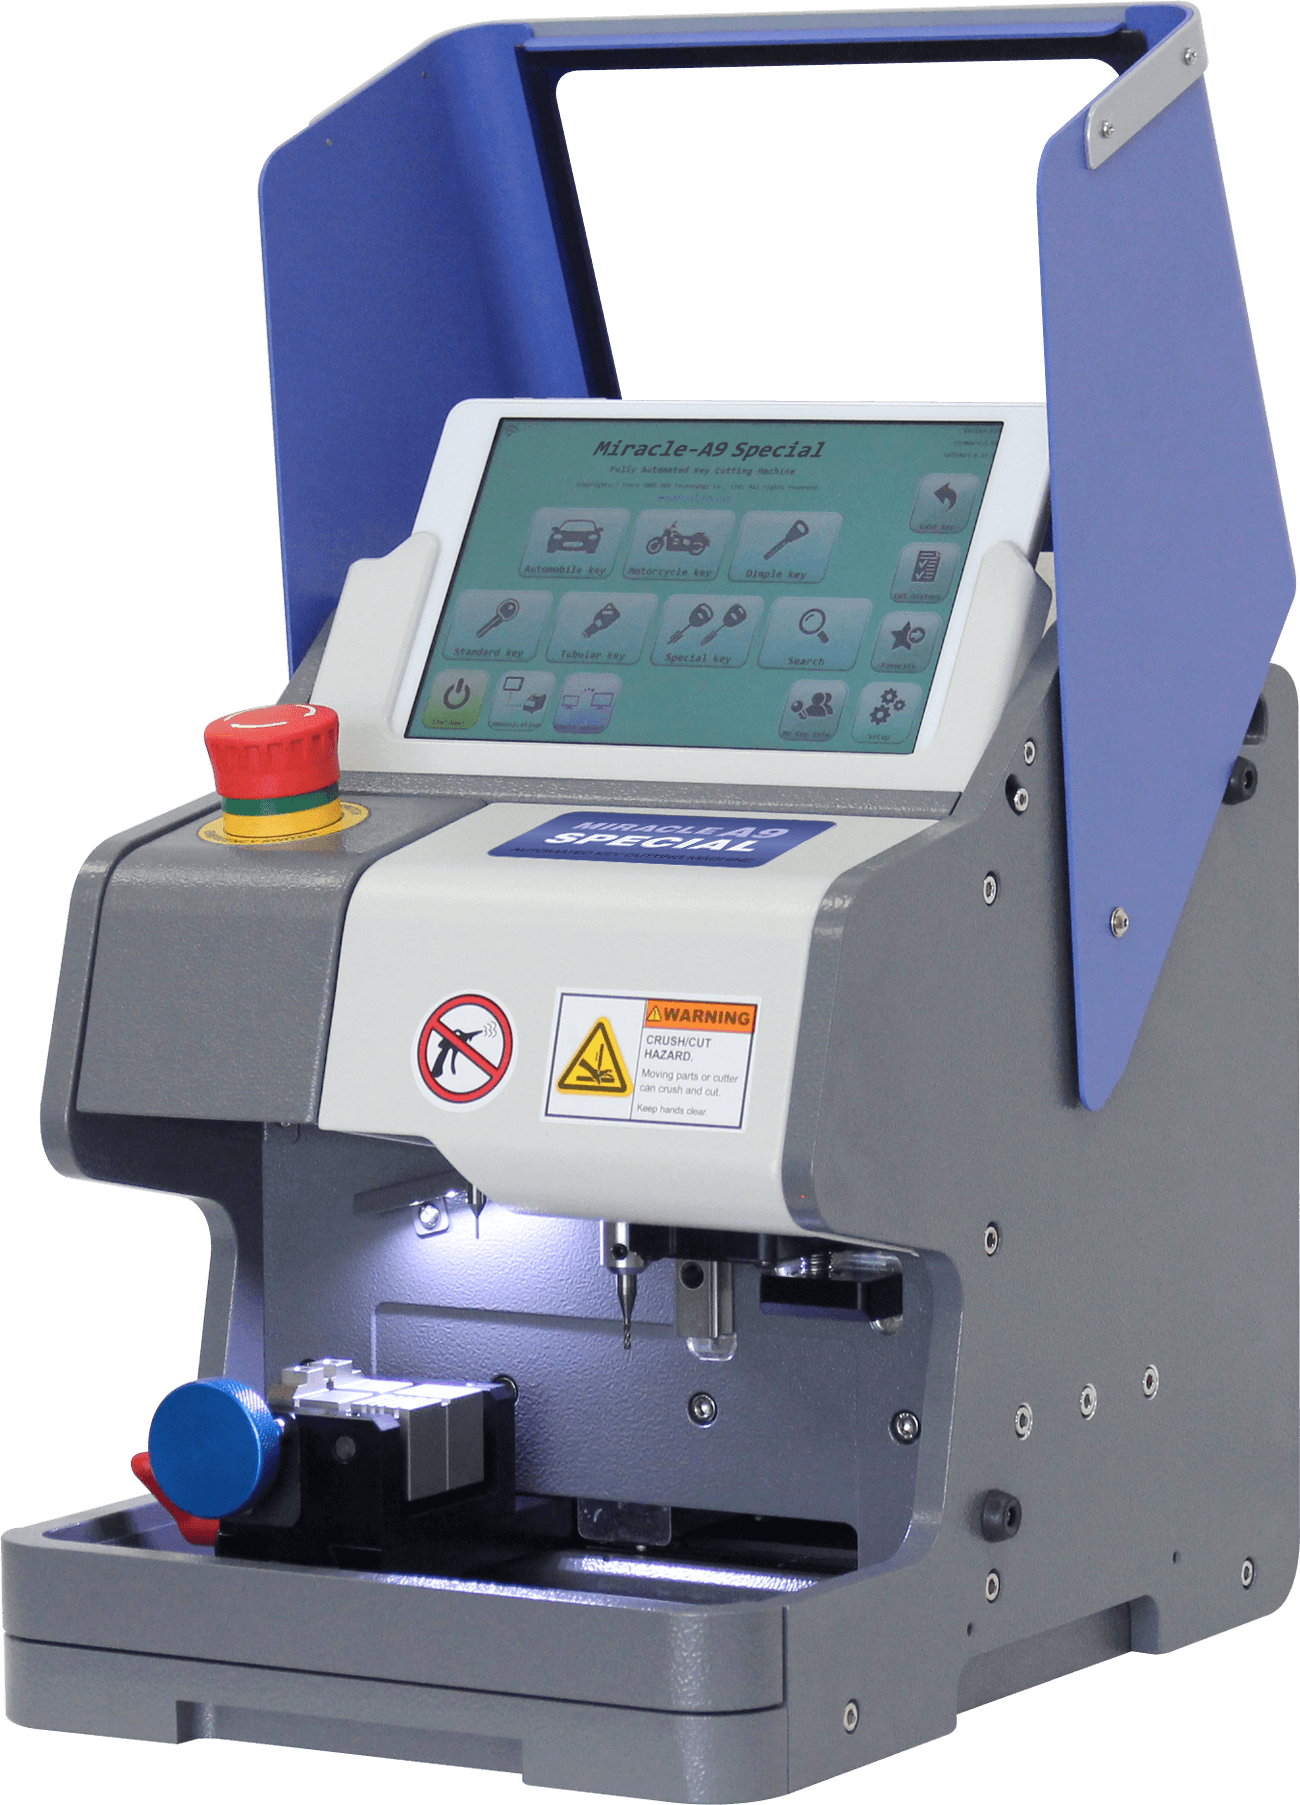 MIRACLE A9 SPECIAL KEY CUTTING MACHINE A9S BY REDT Miracle